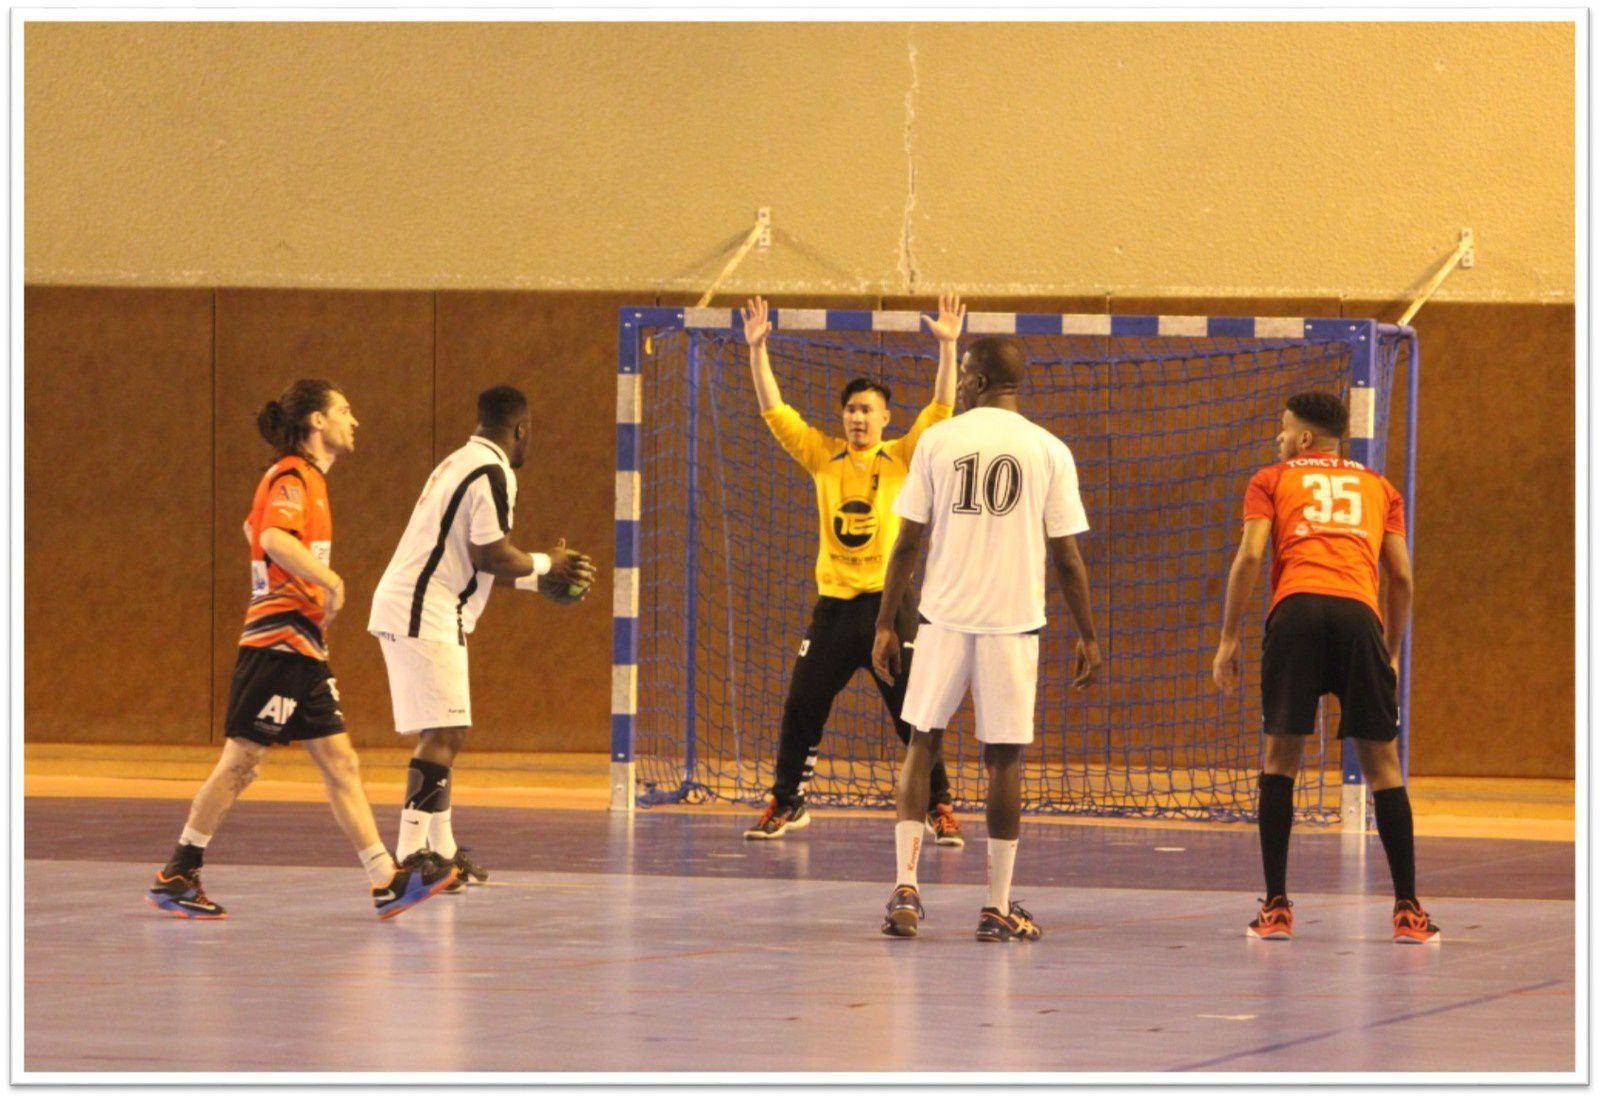 THBMLV 2 vs MONTFERMEIL (Pré-Nationale) 09.04.2016